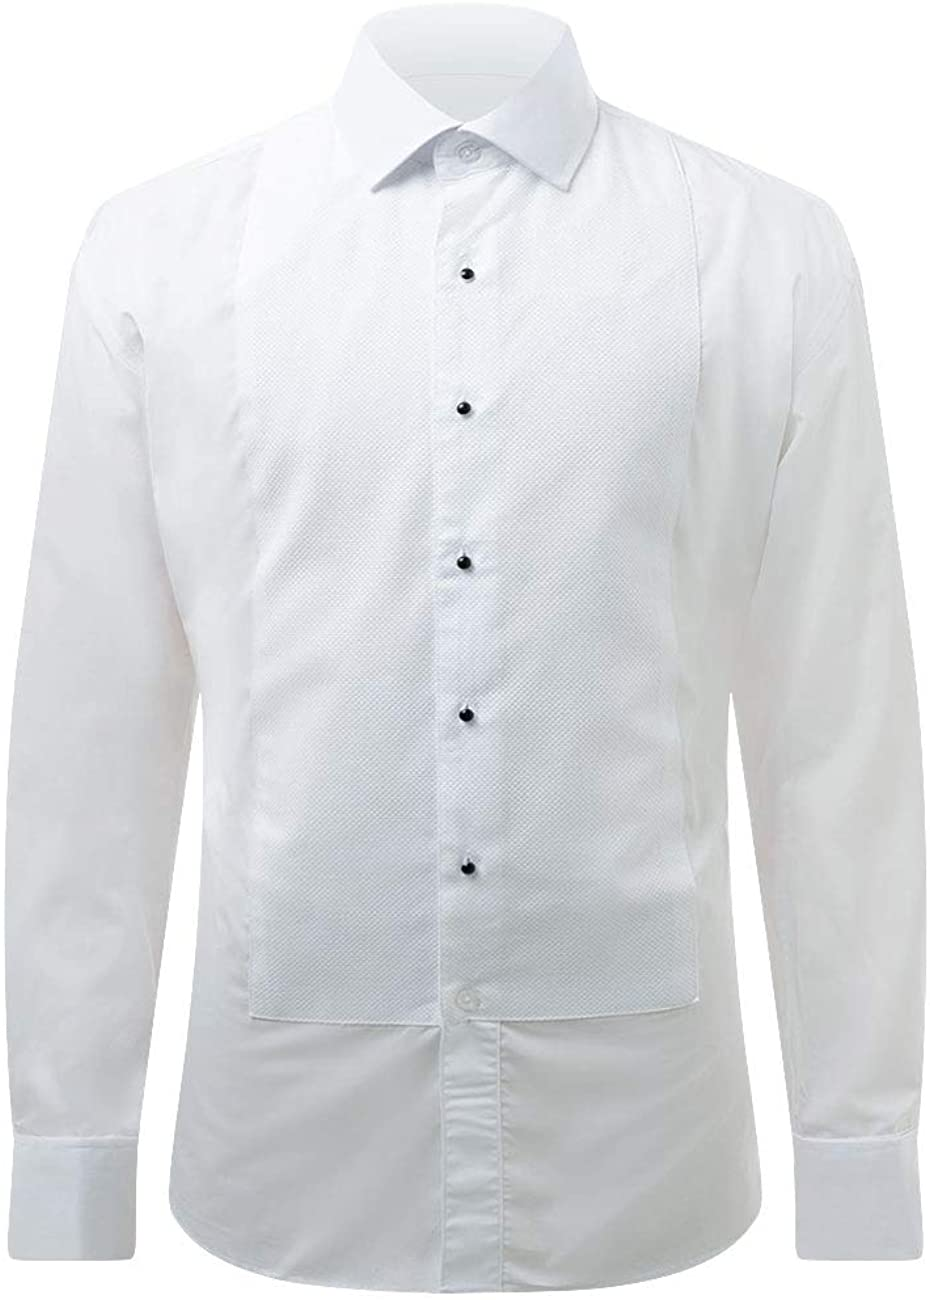 1940s UK and Europe Men's Clothing – WW2, Swing Dance, Goodwin Dobell Mens White Marcella Evening Dress Shirt Regular Fit Standard Collar Stud Button Front £39.99 AT vintagedancer.com